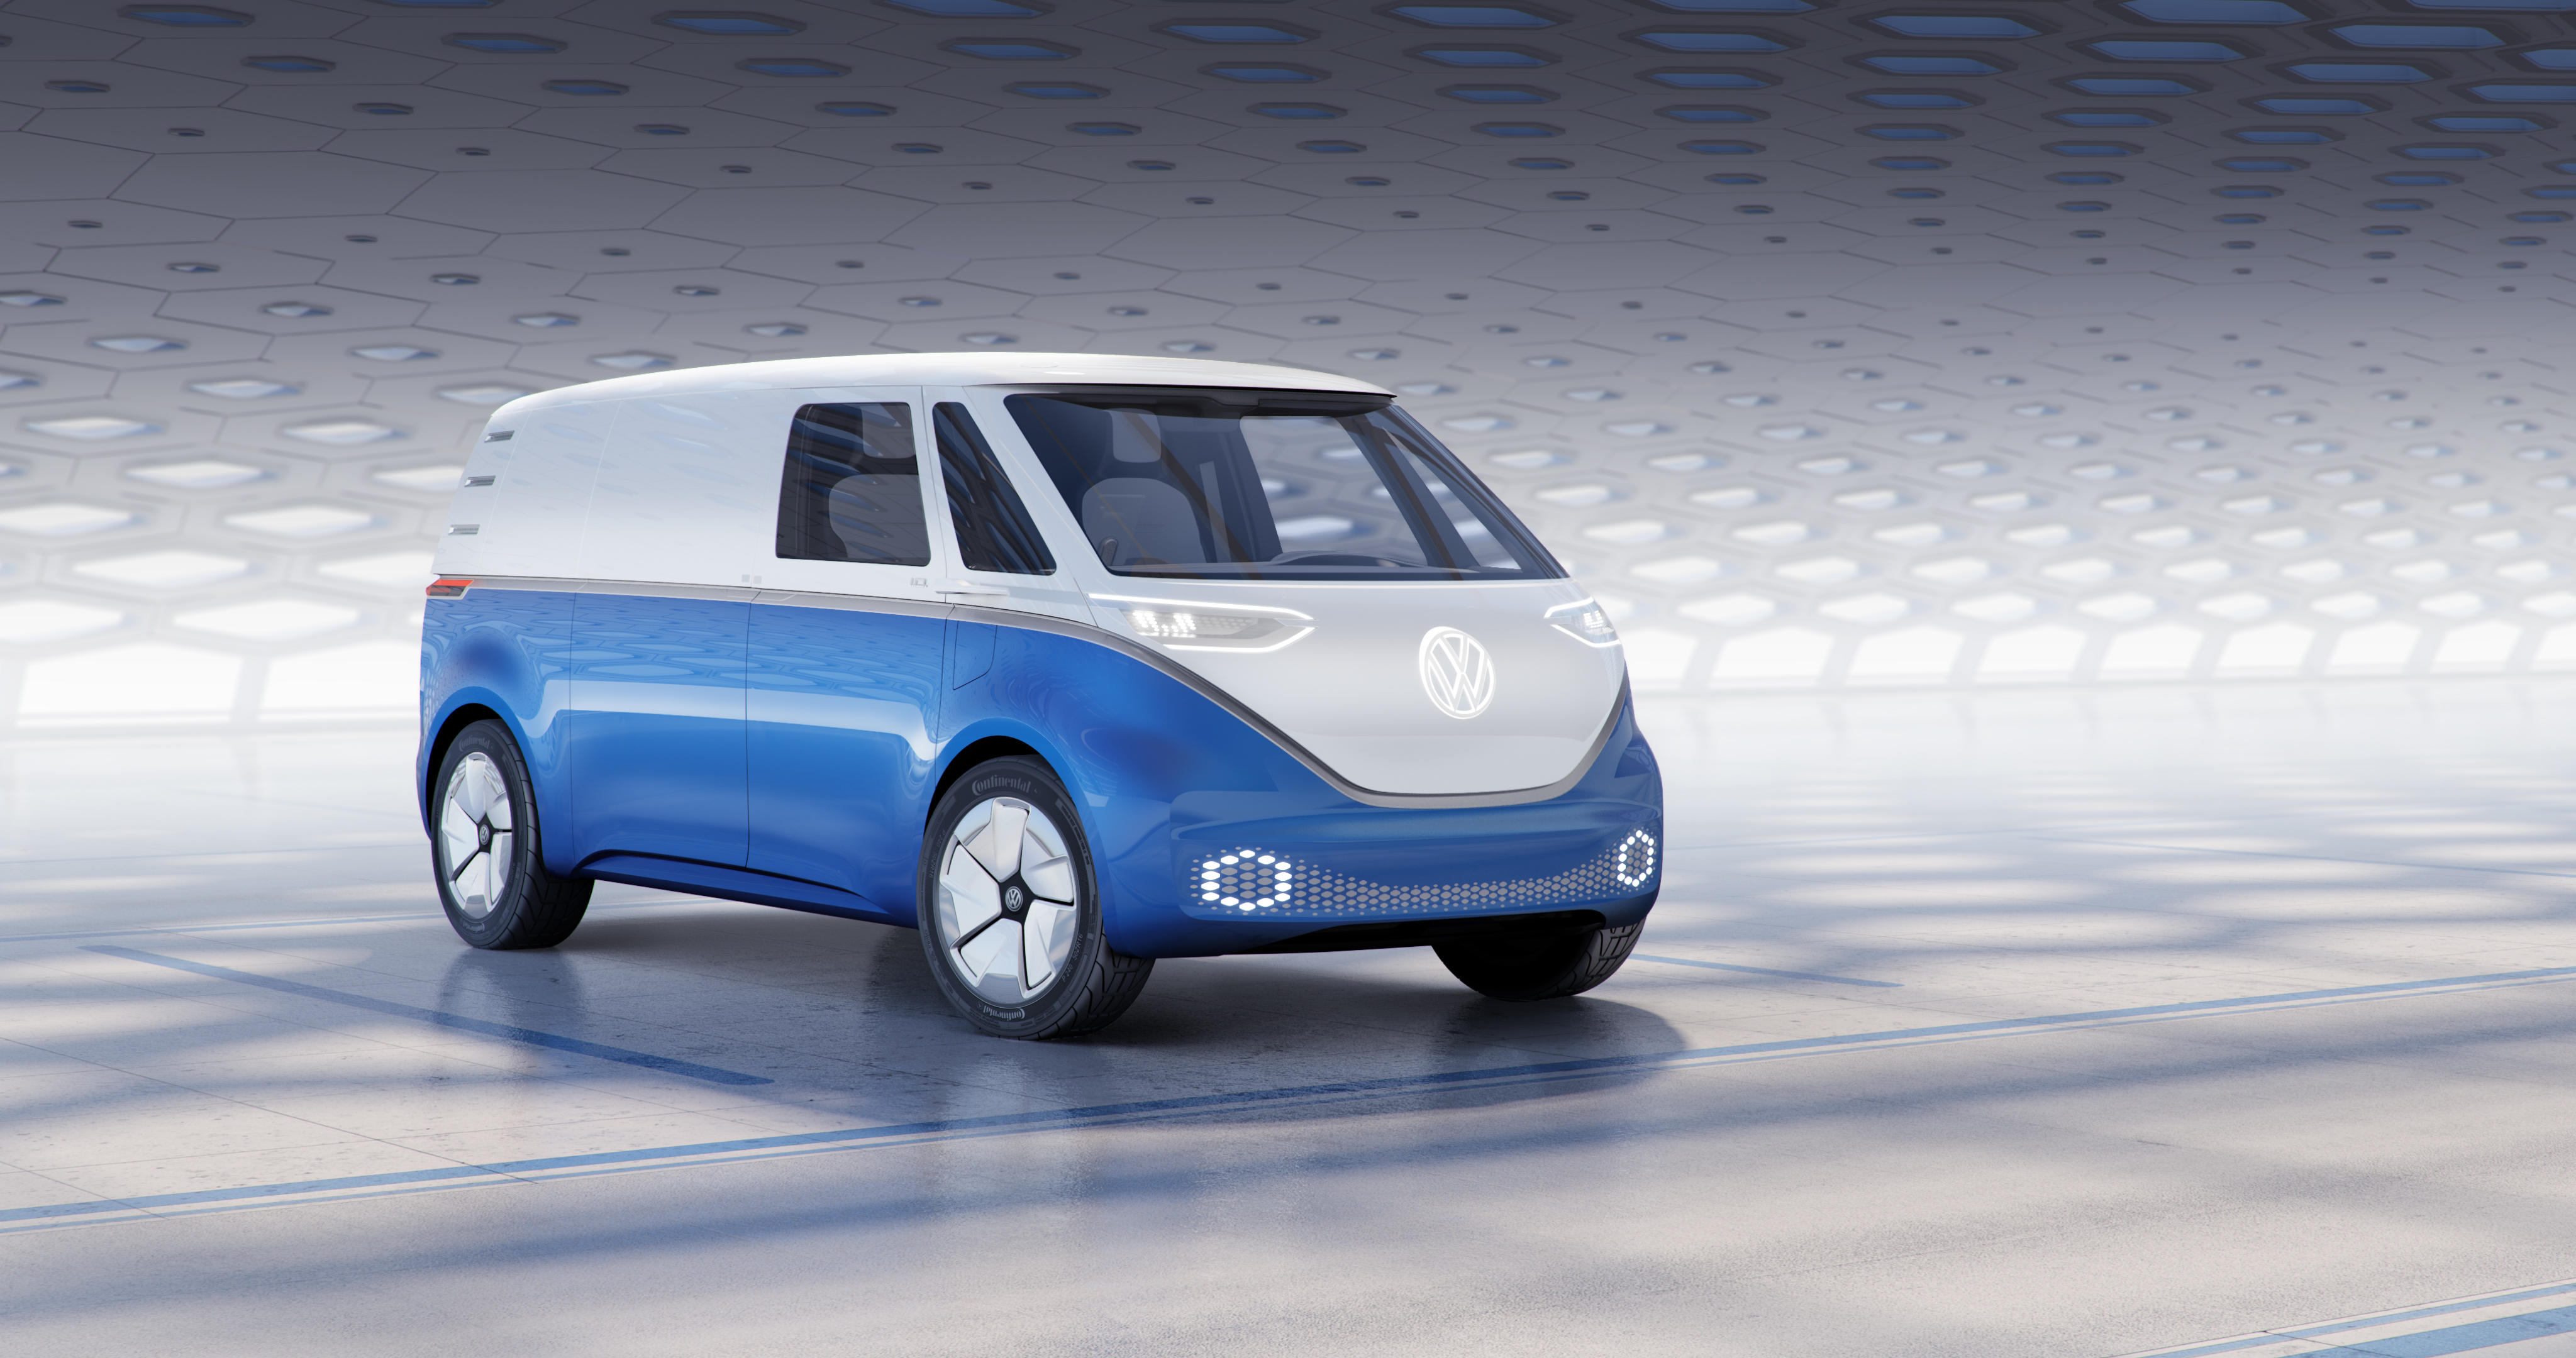 i-d-buzz-cargo-based-on-the-i-d-family-provides-look-ahead-to-a-new-era-of-light-commercial-vehicles-19907